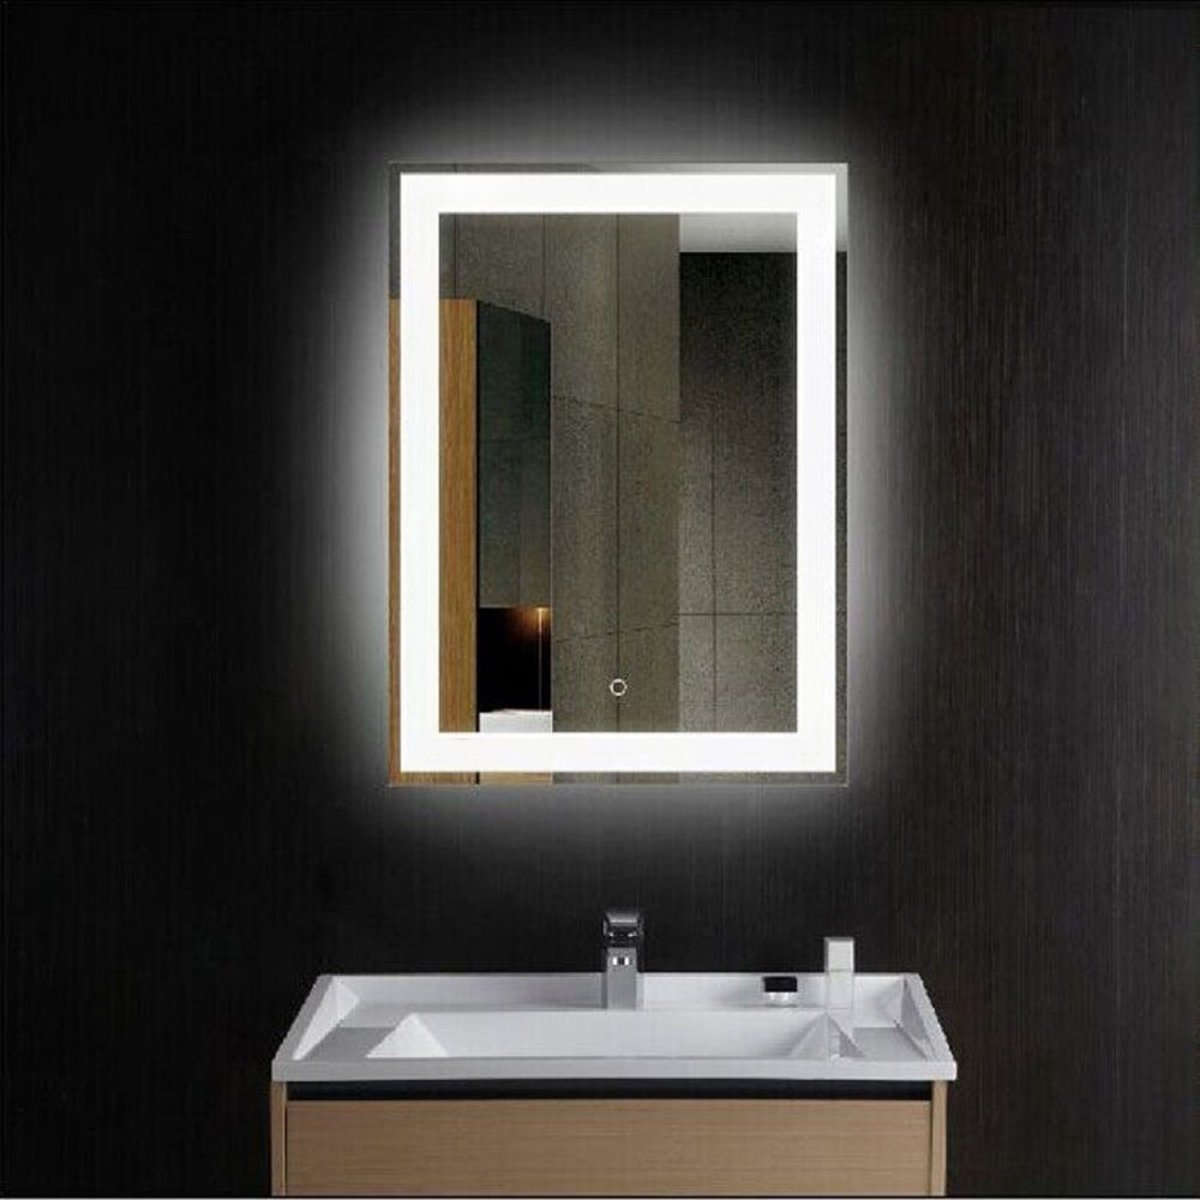 CO-Z Wall Mounted LED Mirrors, Modern LED Lighted Bathroom Mirror, Dimmable Rectangle Touch Wall Mirror with Dimmer Lights, Contemporary Light Up Bathroom Vanity Mirror with Lights 24 x 30 Inch